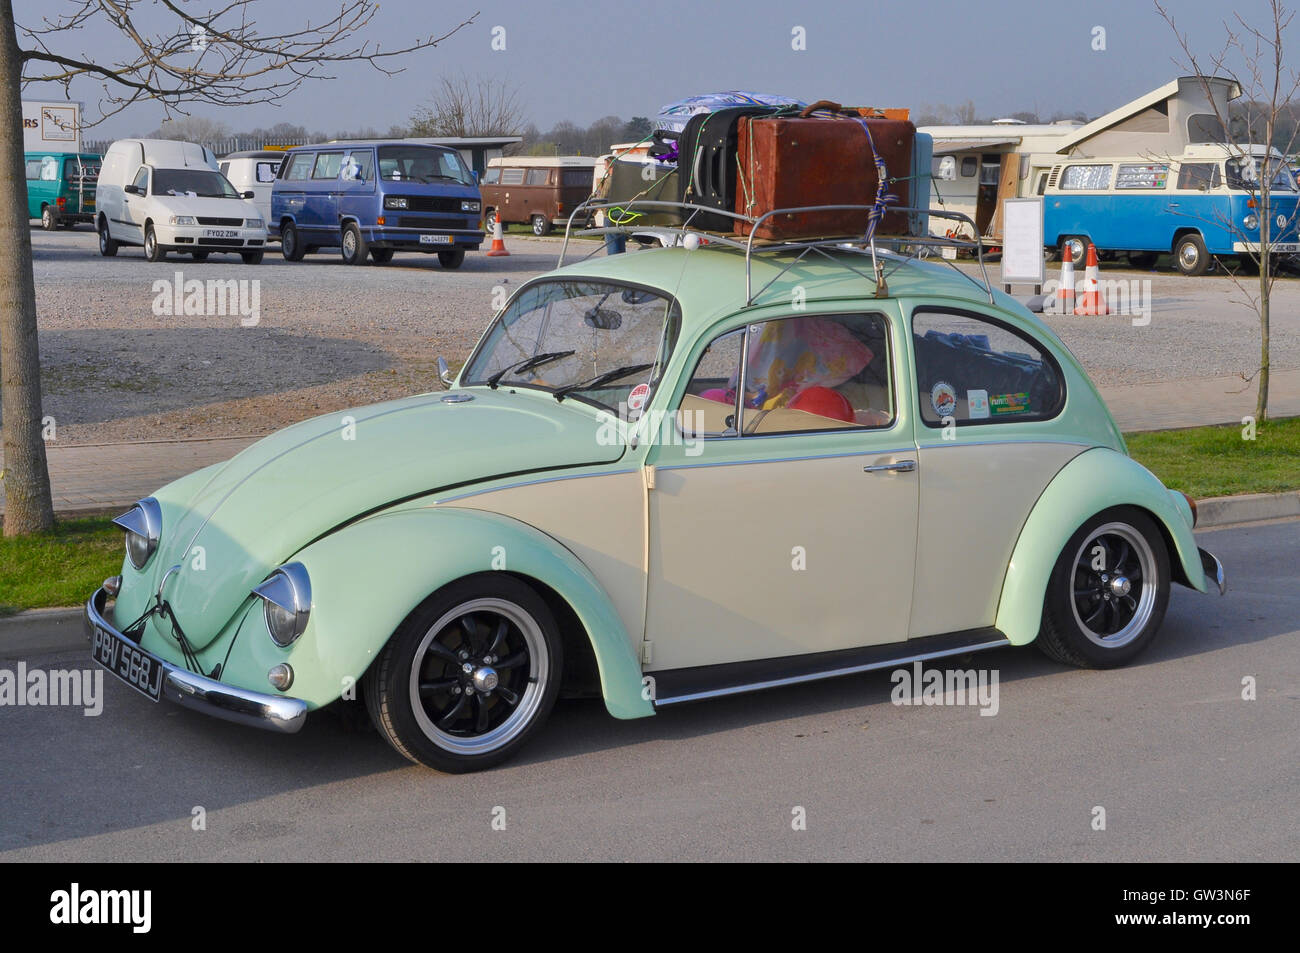 Classi Volkswagen Beetle In Pistachio Green With Retro Luggage Loaded Onto  A Roof Rack